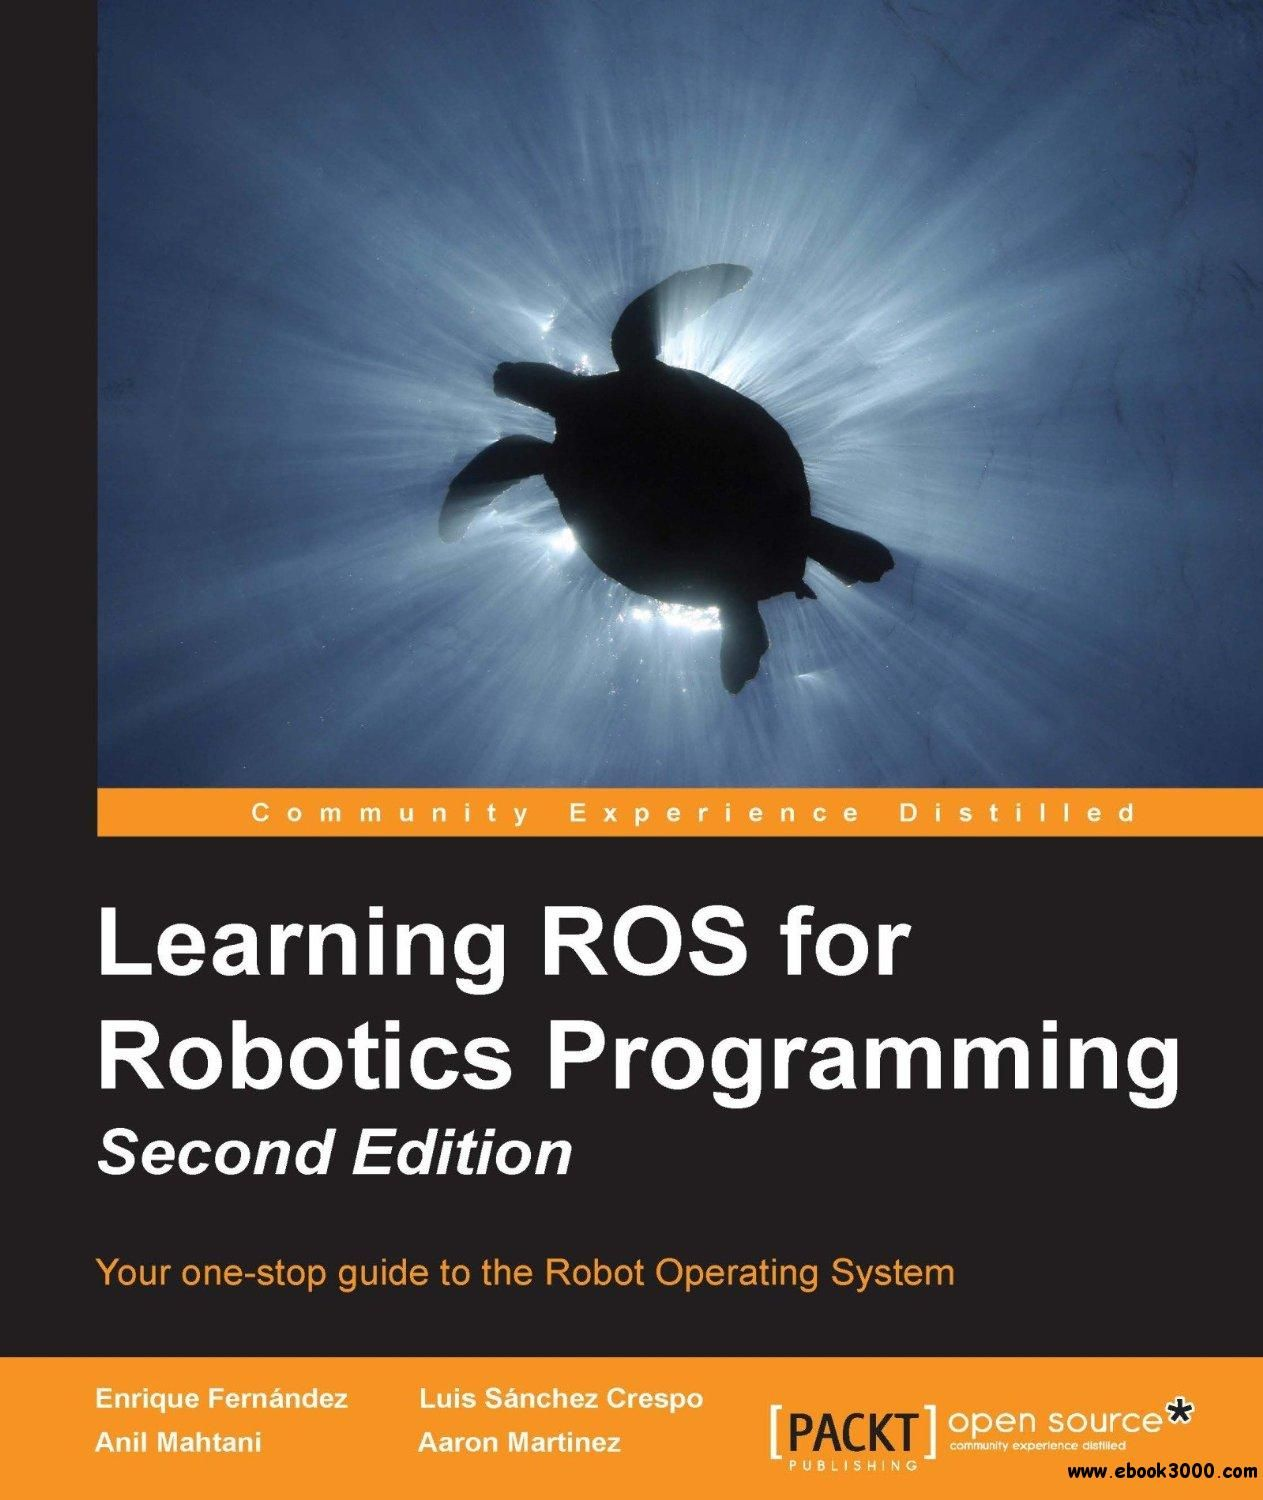 Learning ros for robotics programming second edition free ebooks learning ros for robotics programming second edition free ebooks download fandeluxe Images